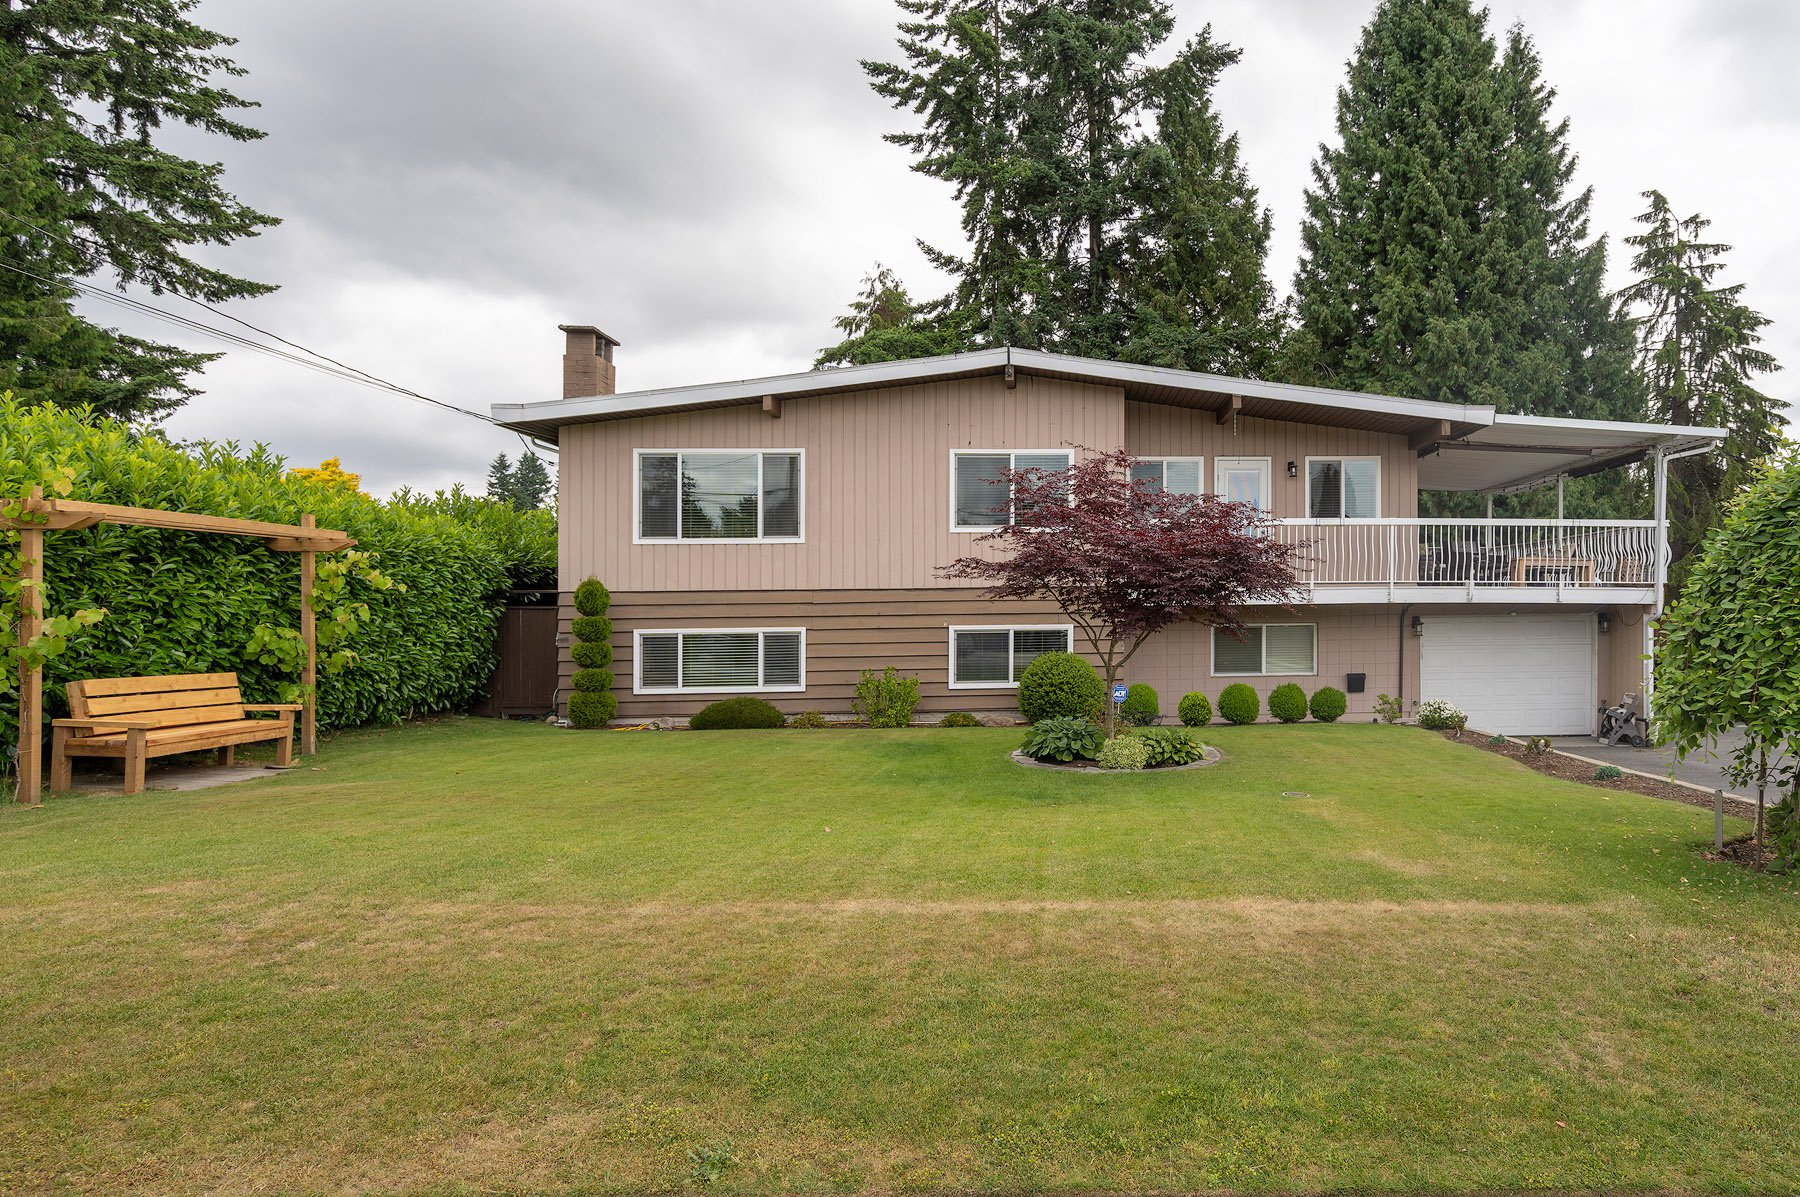 Photo 1: Photos: 423 MONTGOMERY Street in Coquitlam: Central Coquitlam House for sale : MLS®# R2380693